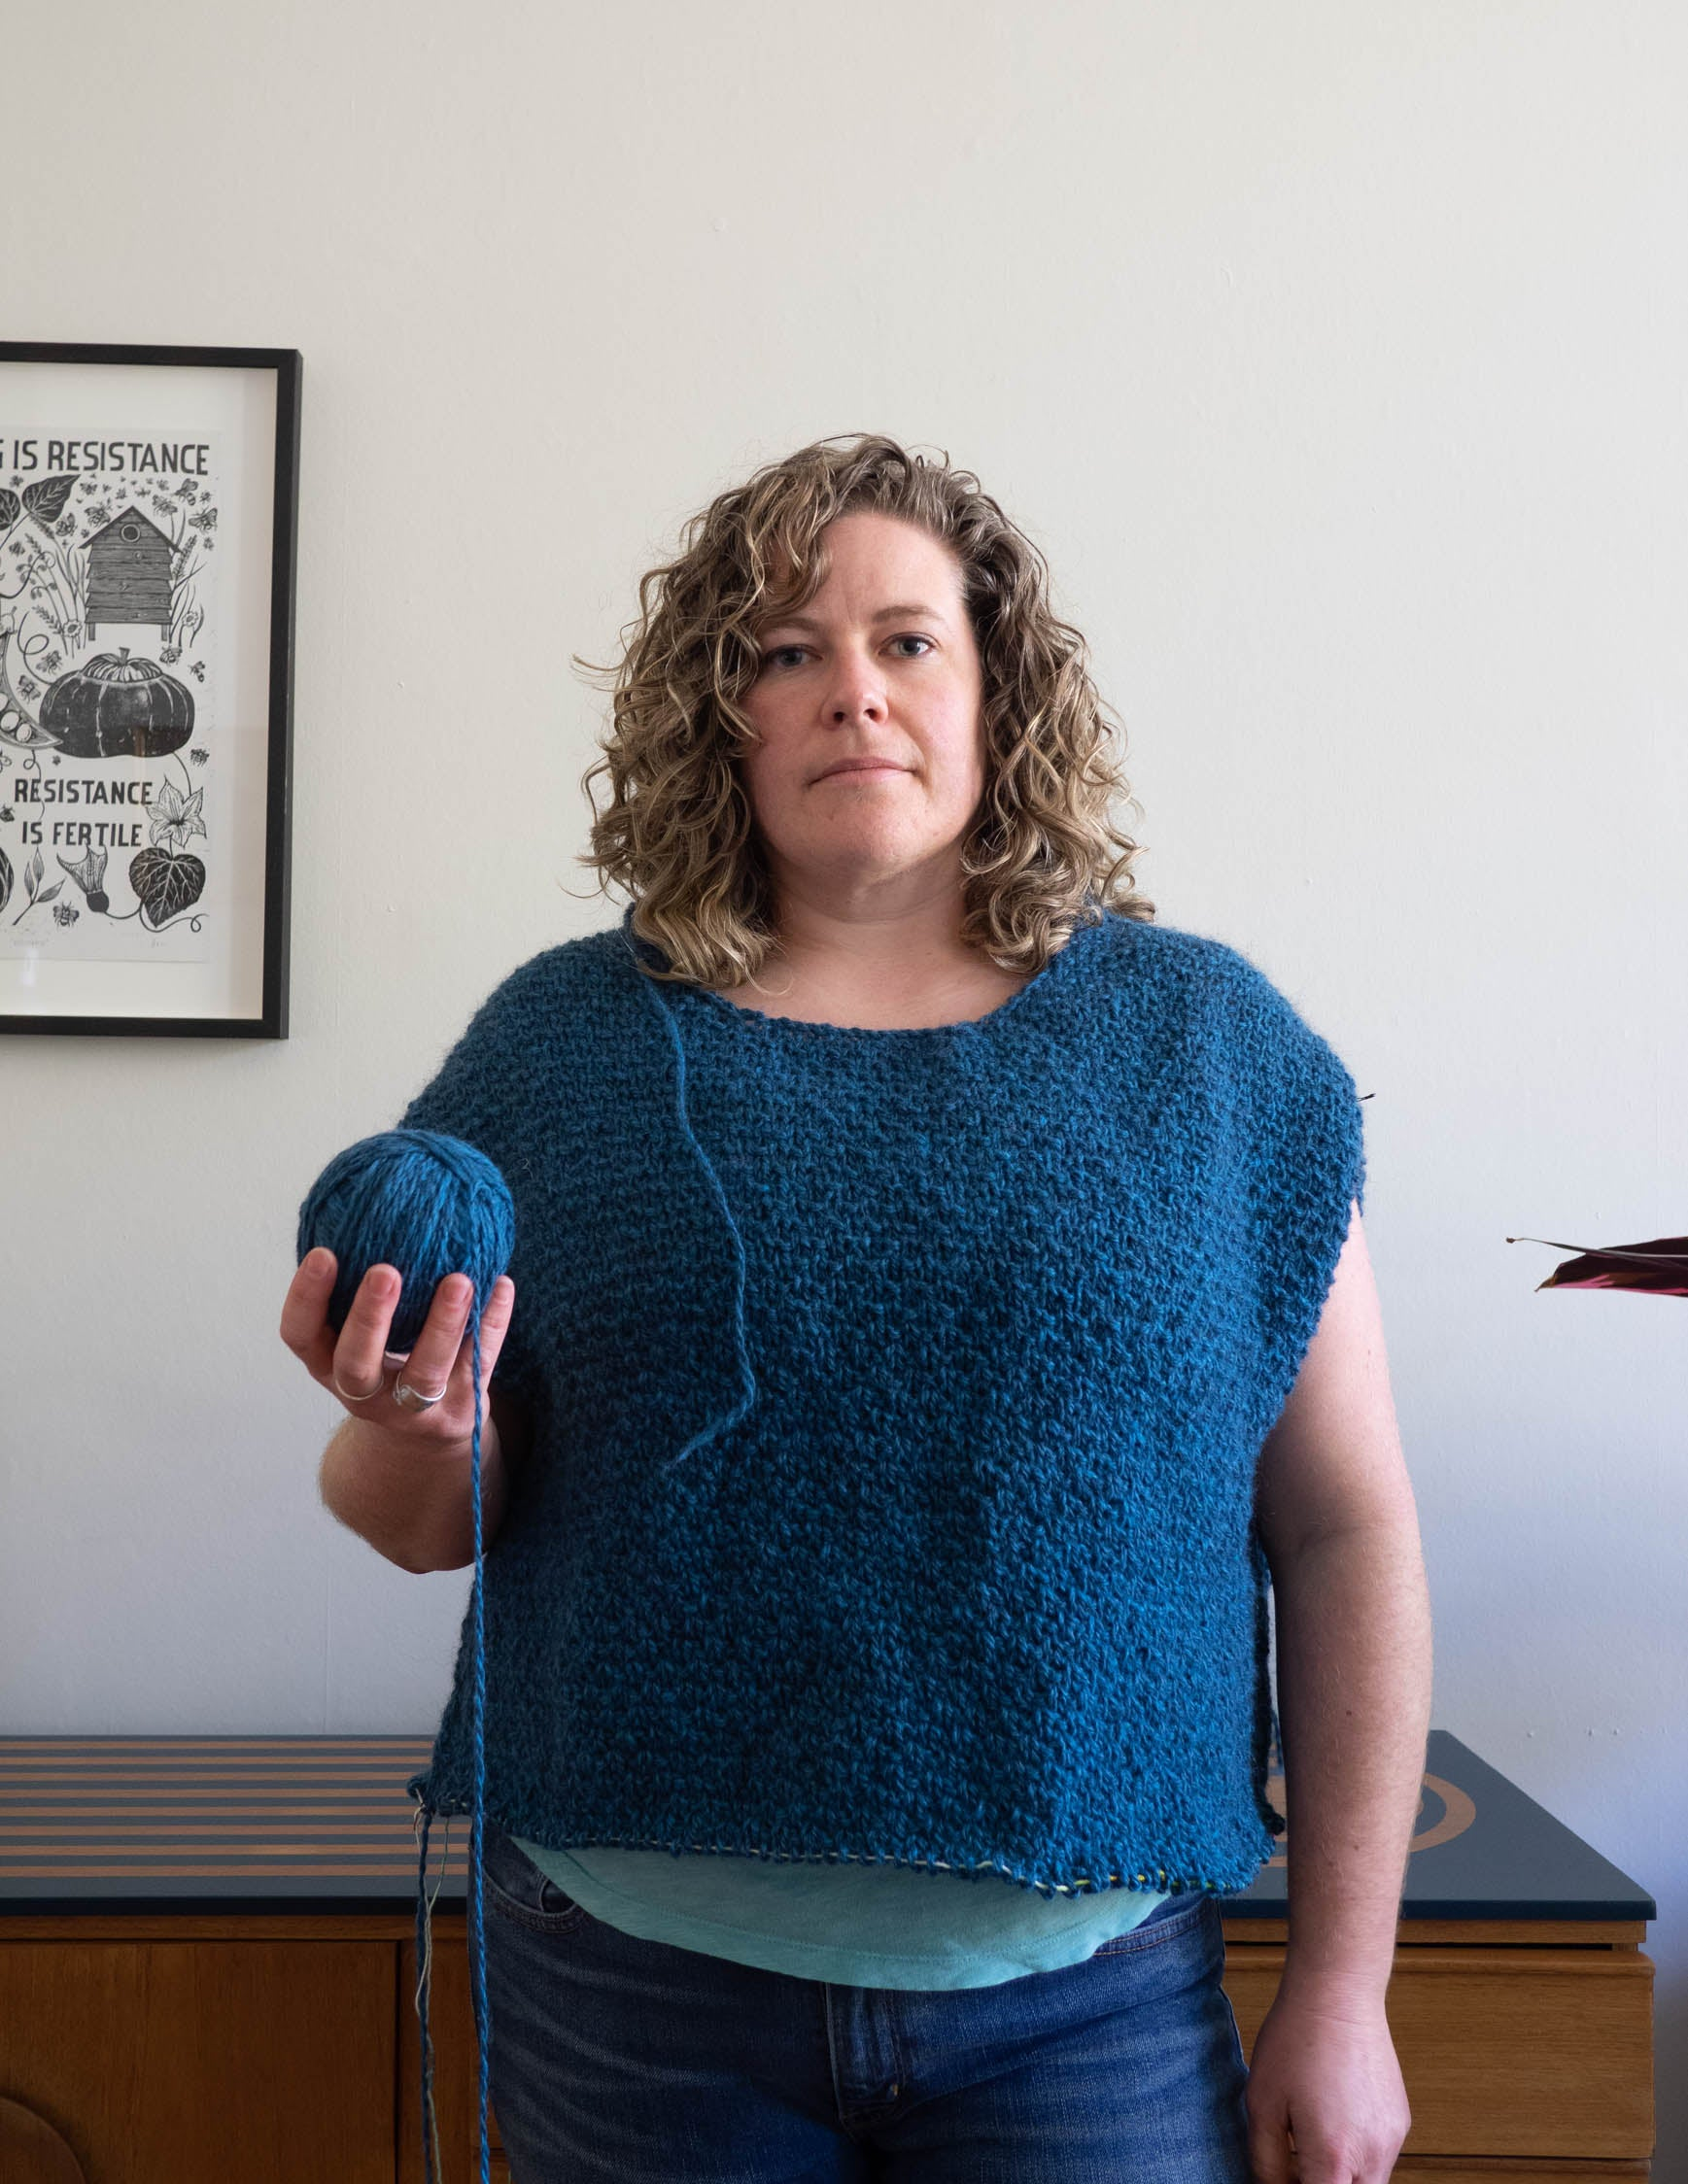 A white woman with curly hair stands looking at the camera. She has a blue textured sweater on that is in progress, the bottom edge is unfinished and it is sleeveless.